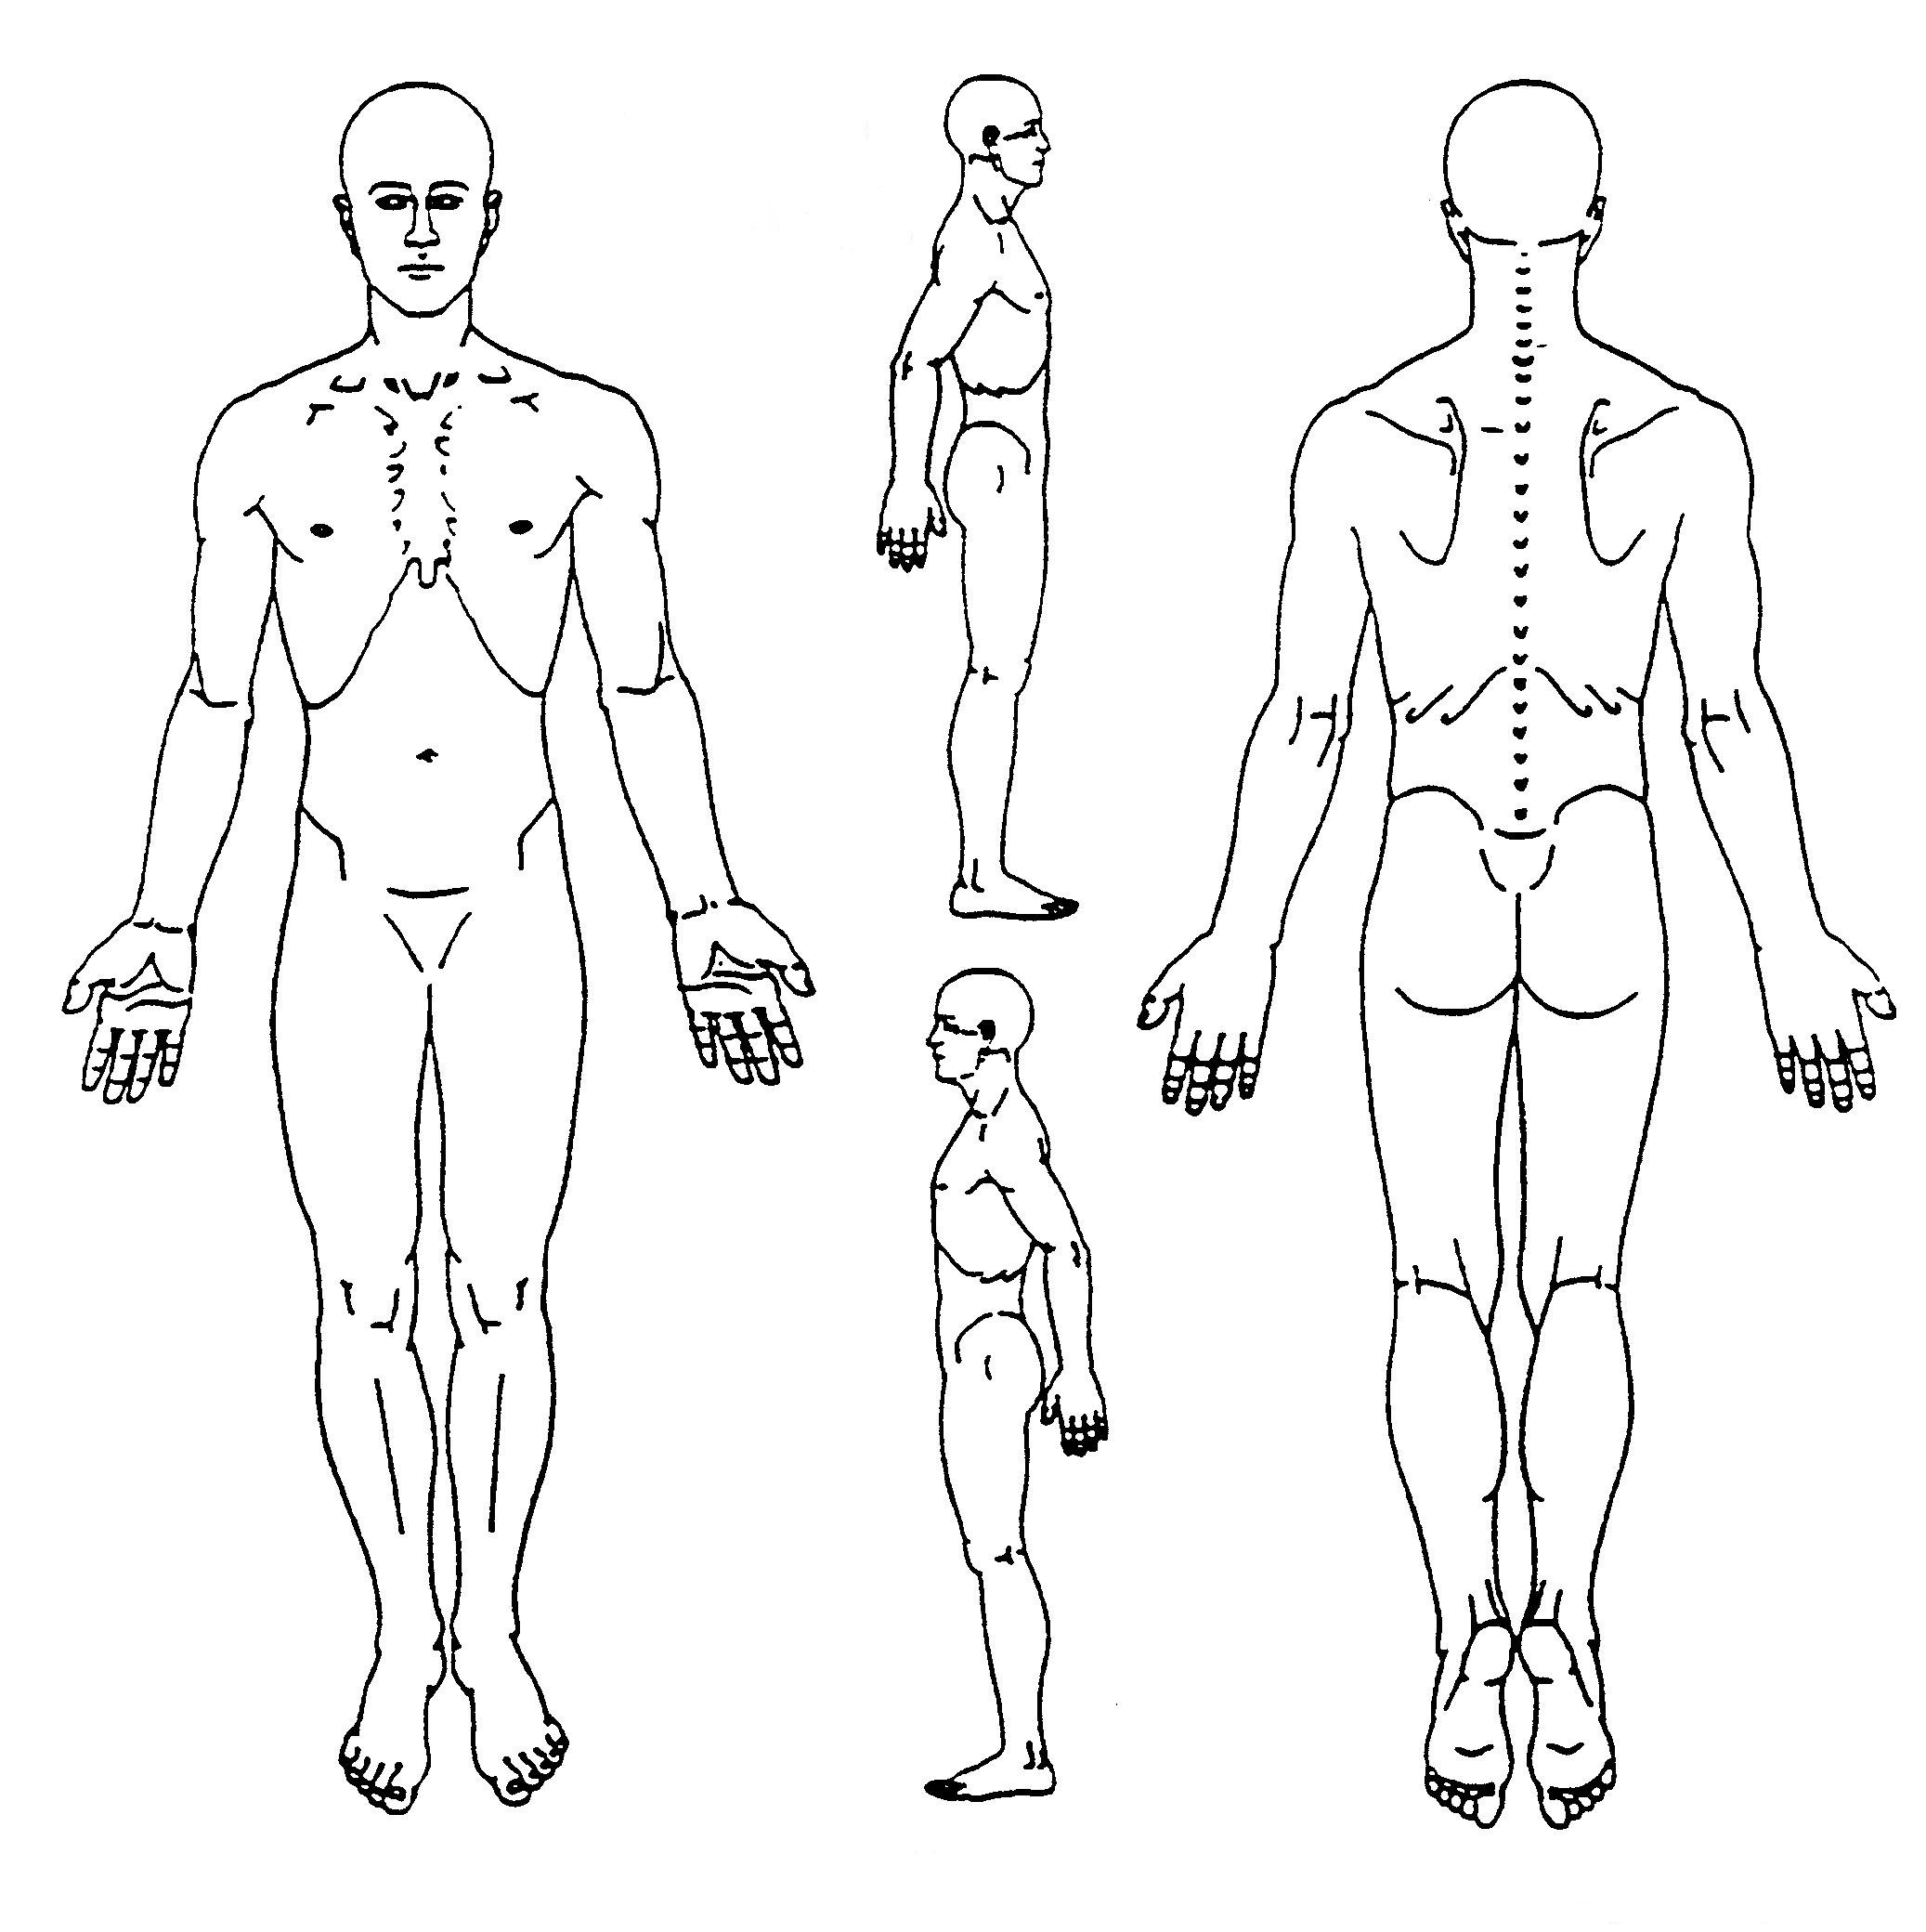 medical body drawing at getdrawings com free for personal use rh getdrawings com drawing free body diagrams worksheet drawing free body diagrams physics classroom answers